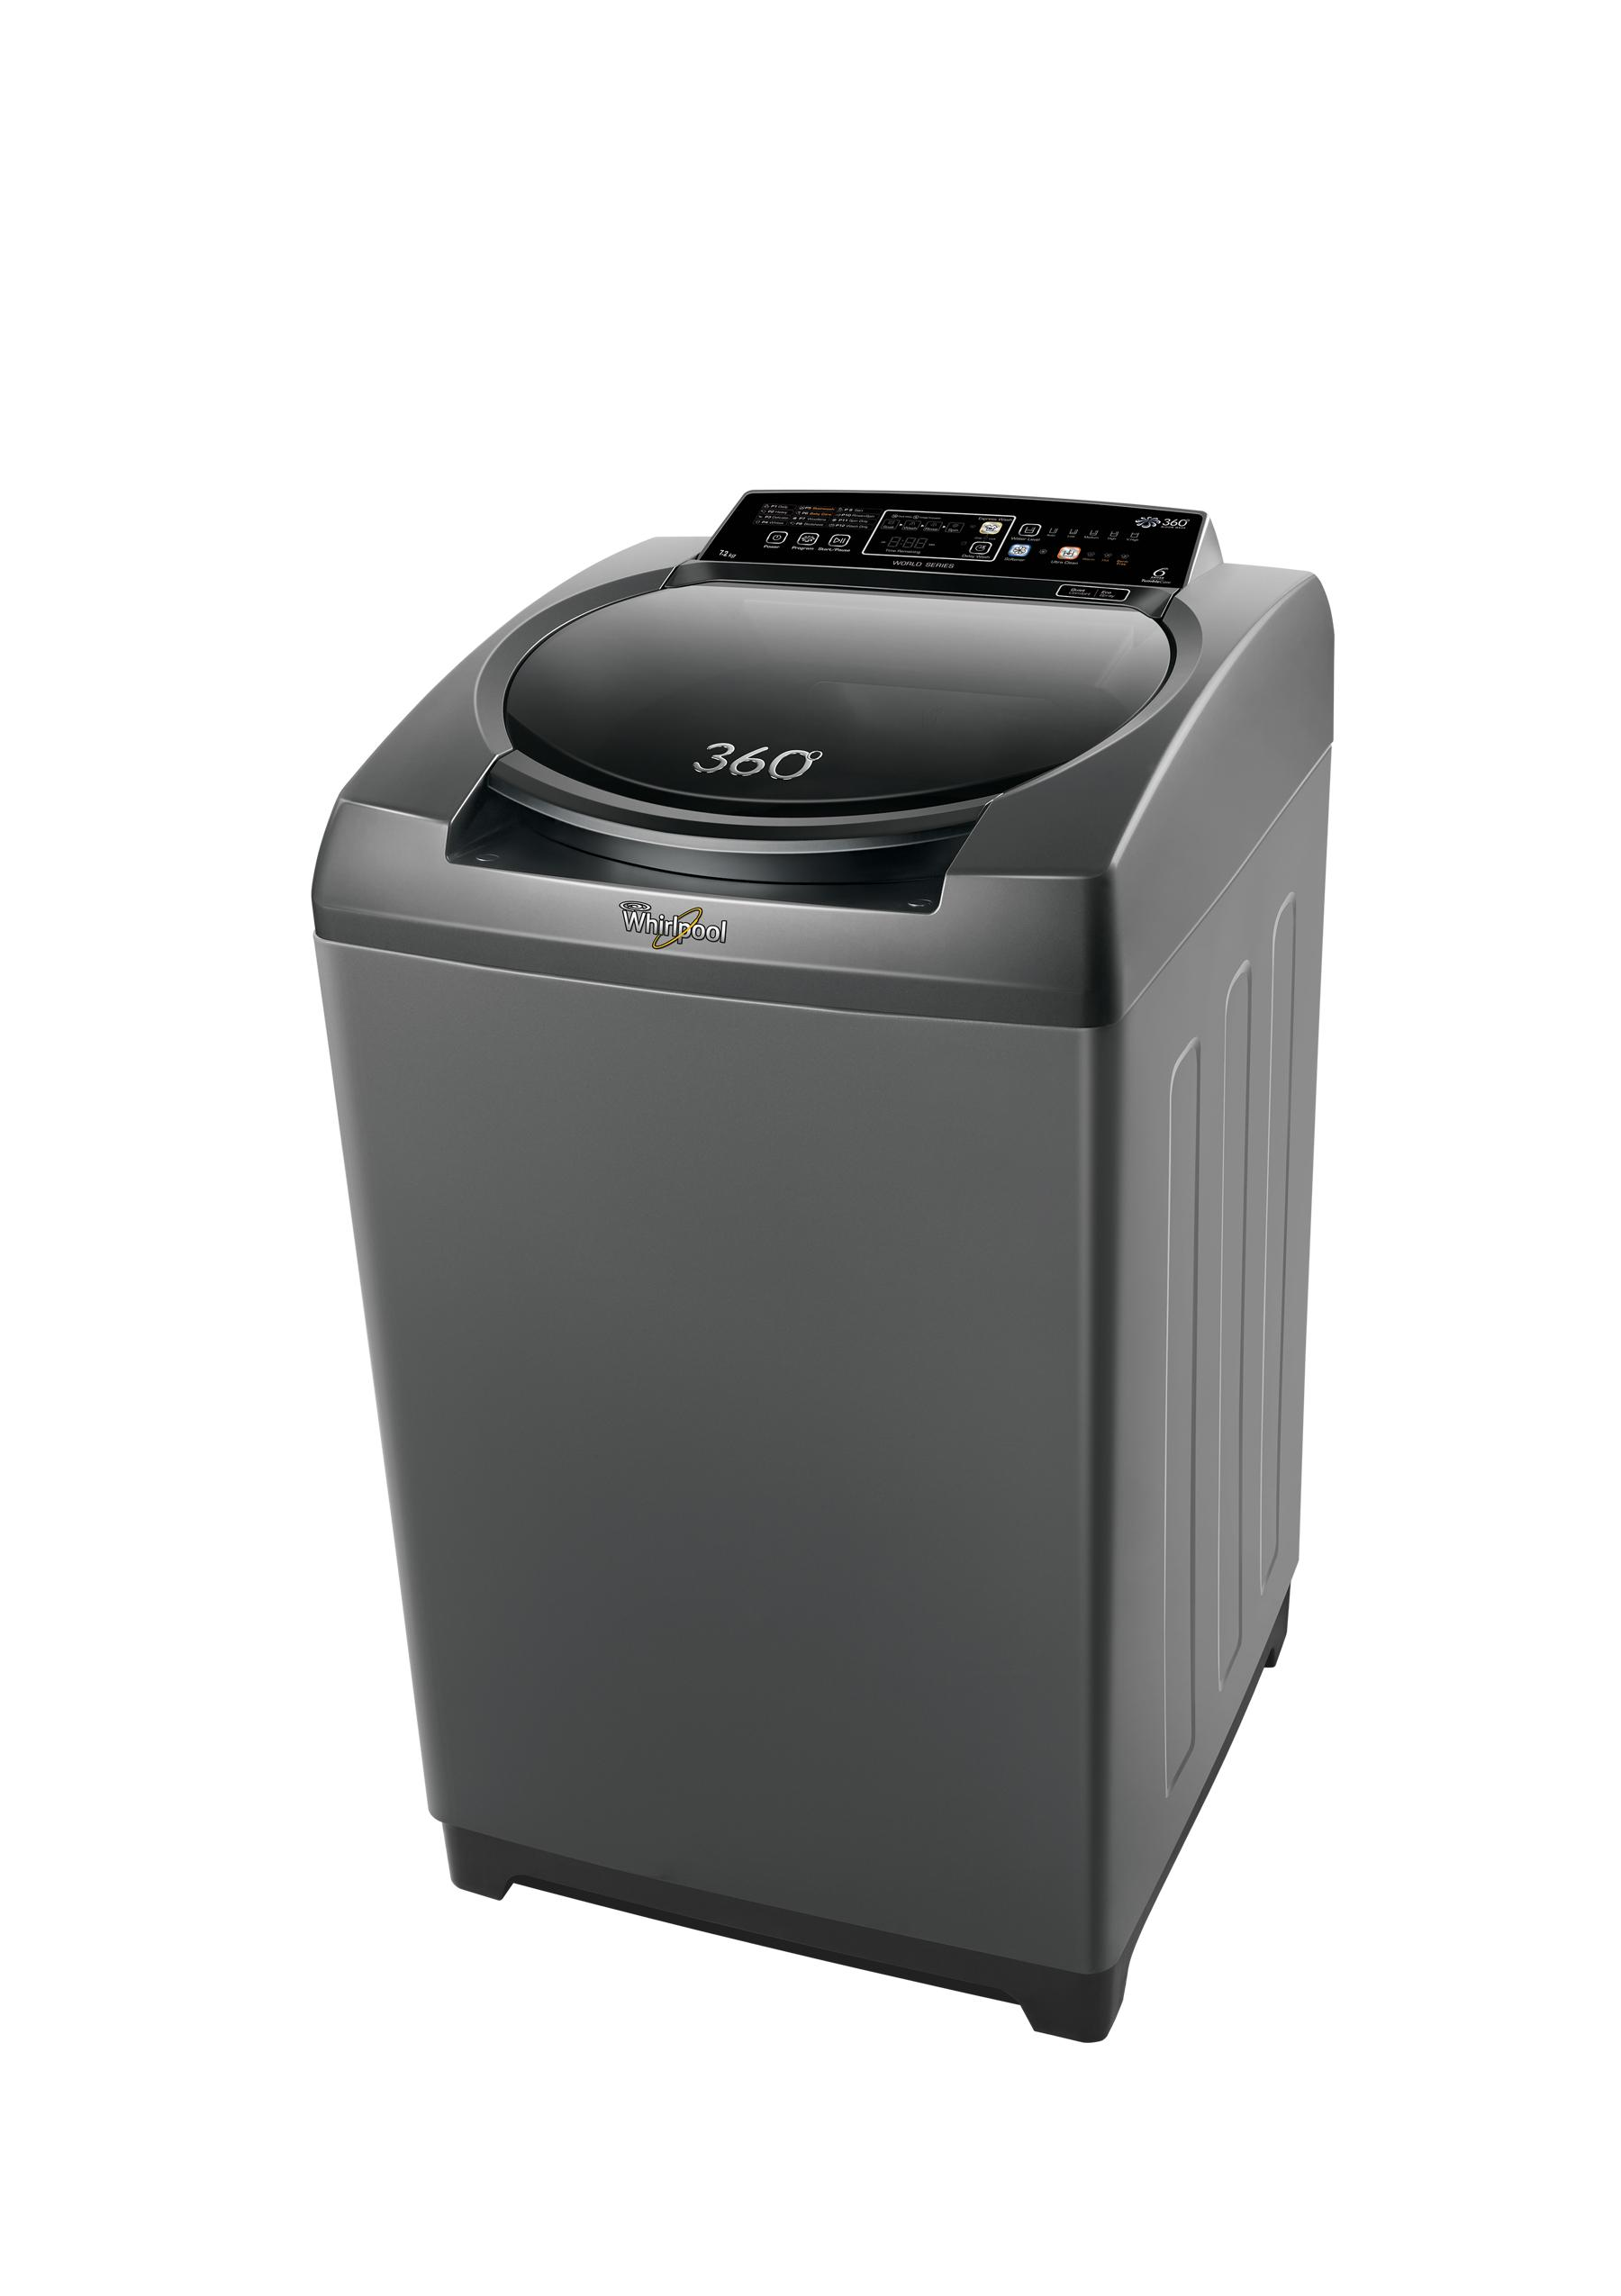 Whirlpool 360 Degree Bloom Wash 7.2 Kg Top Loading Fully Auto Graphite Washing Machine Image